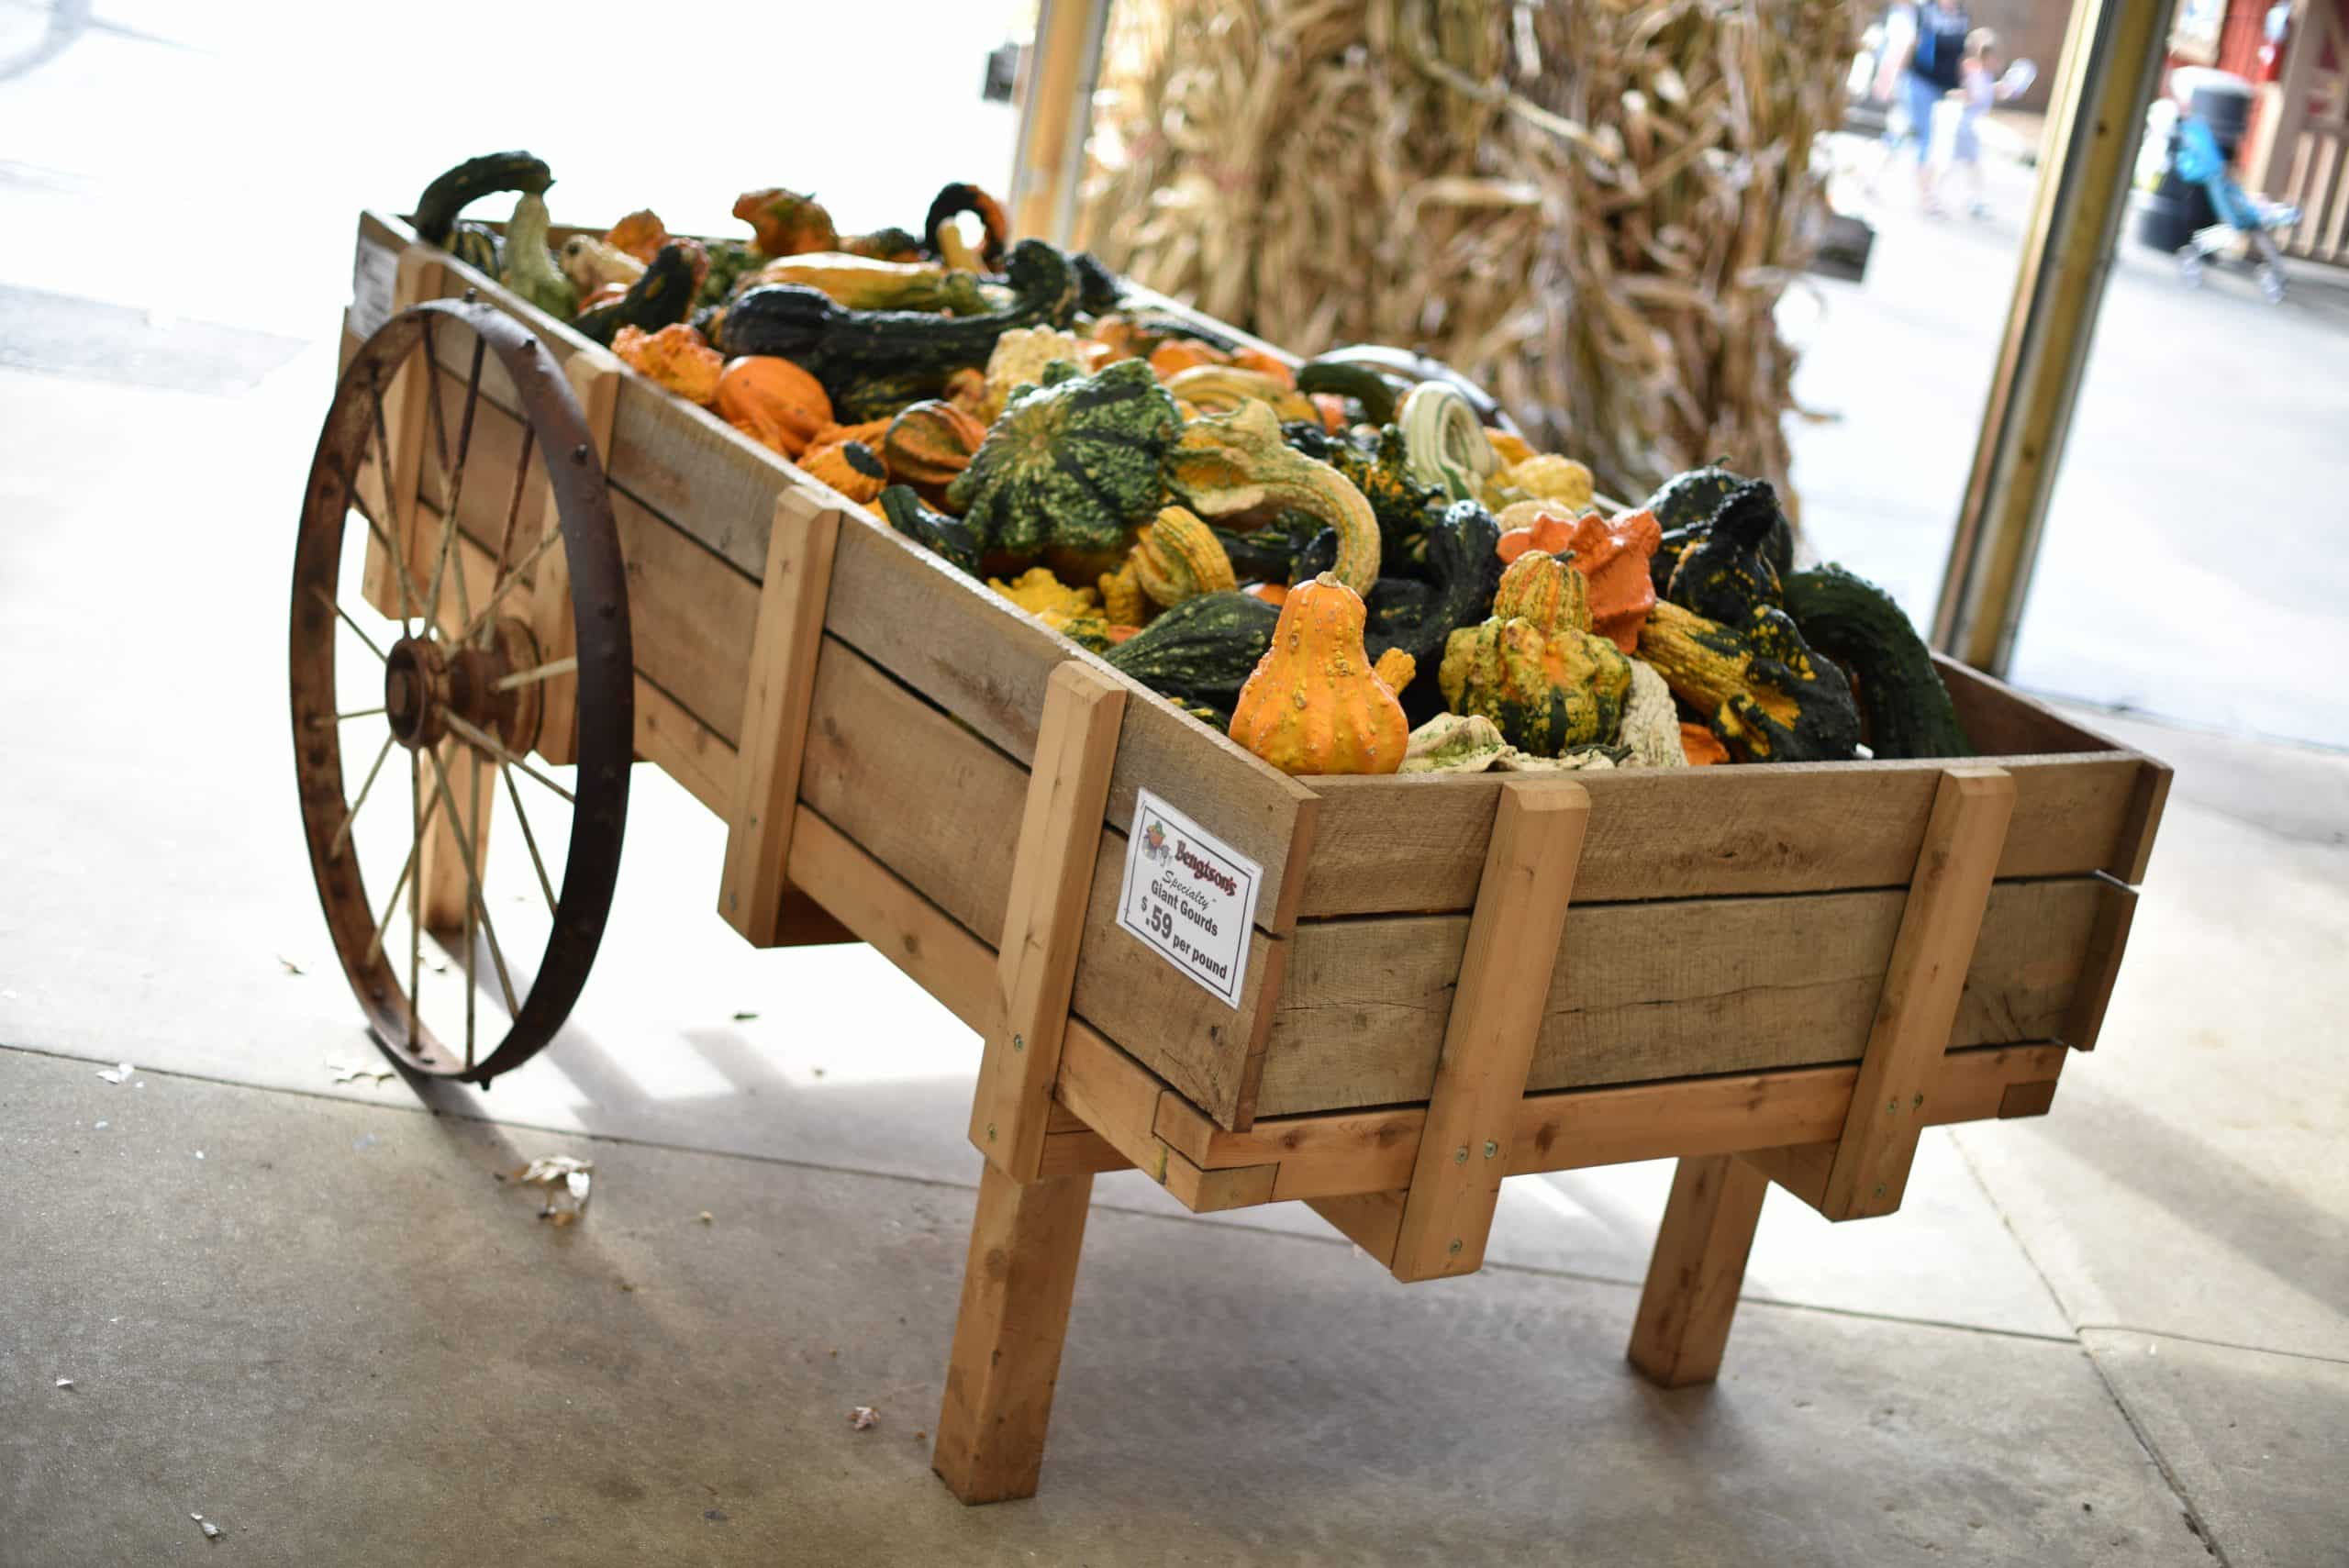 Gourds in a wagon